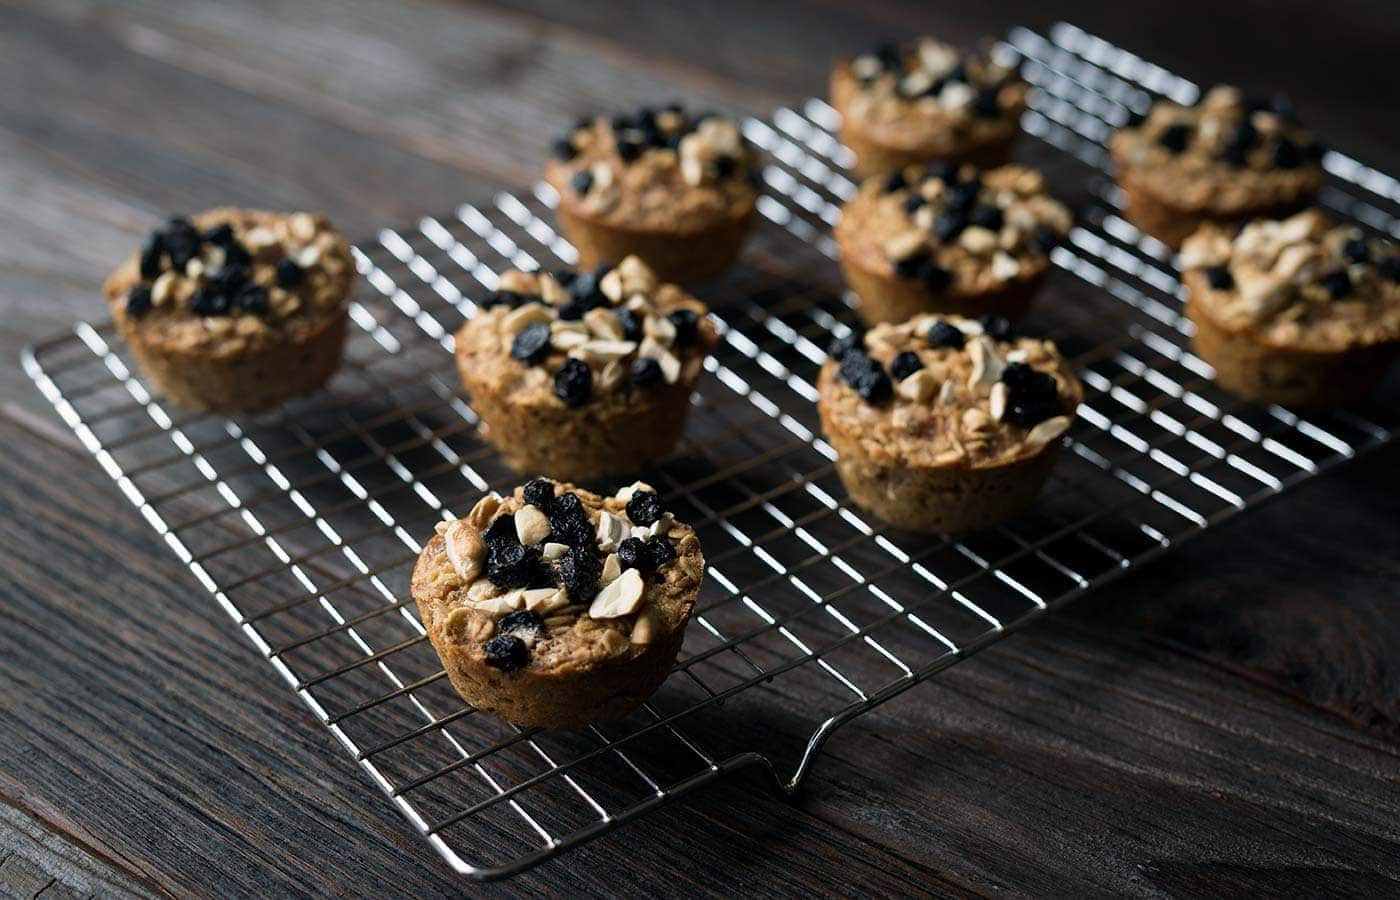 Finished baked oatmeal cups